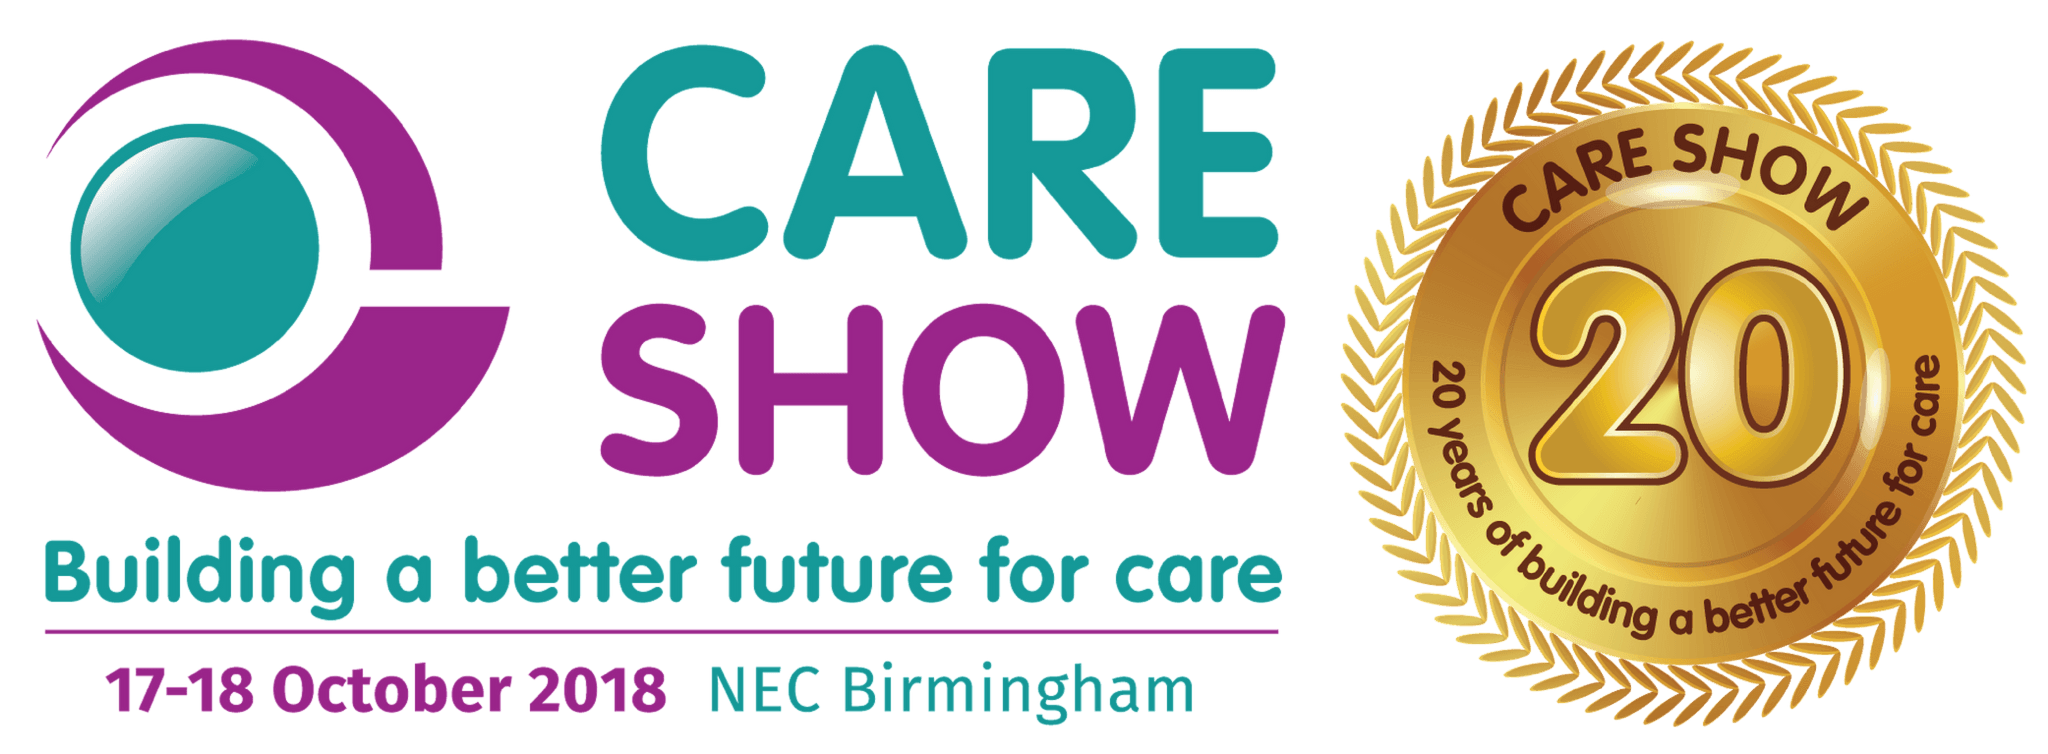 The Care show